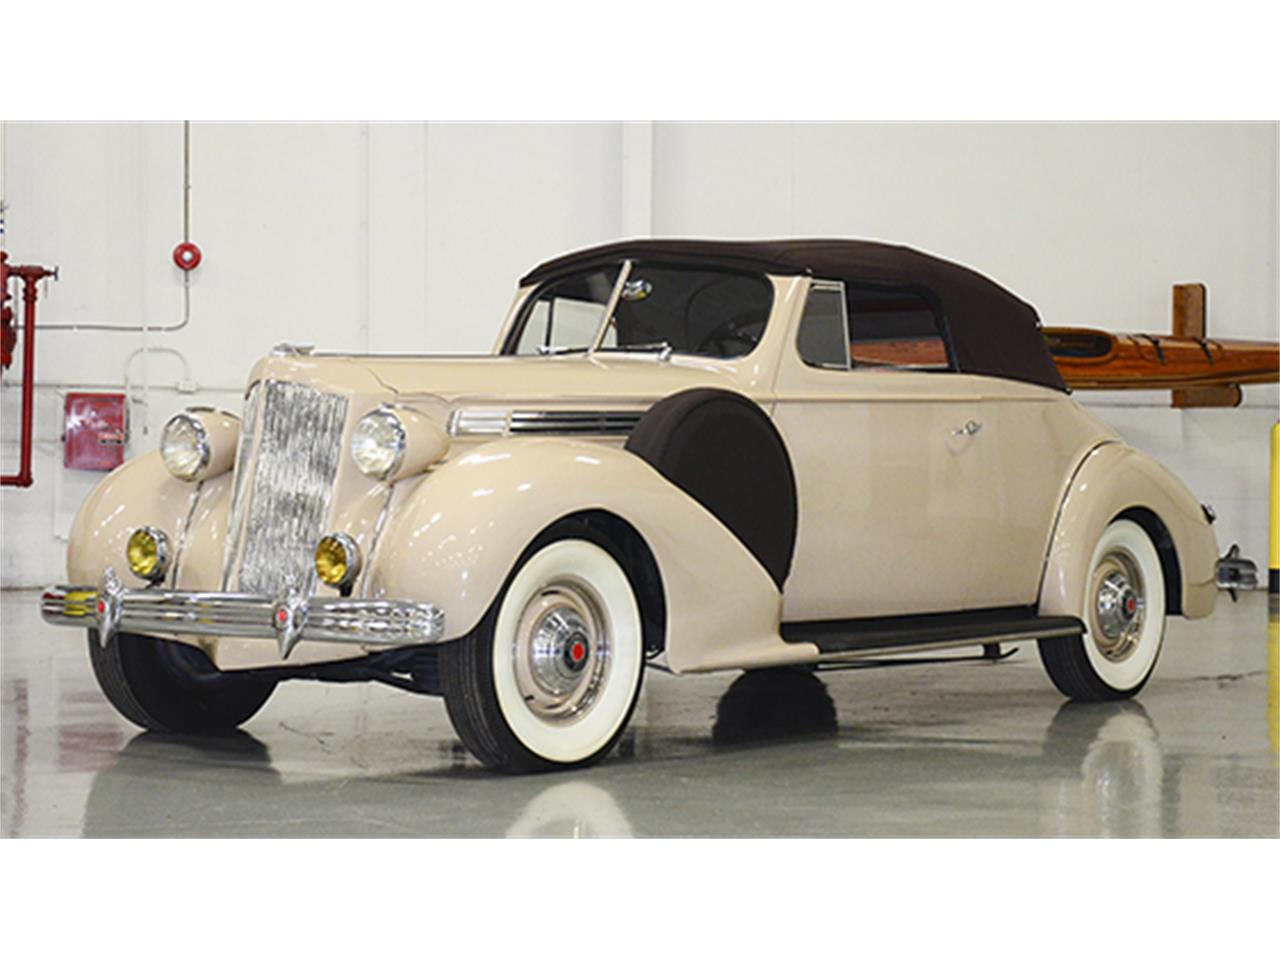 1939 Packard One Twenty Convertible Coupe for Sale